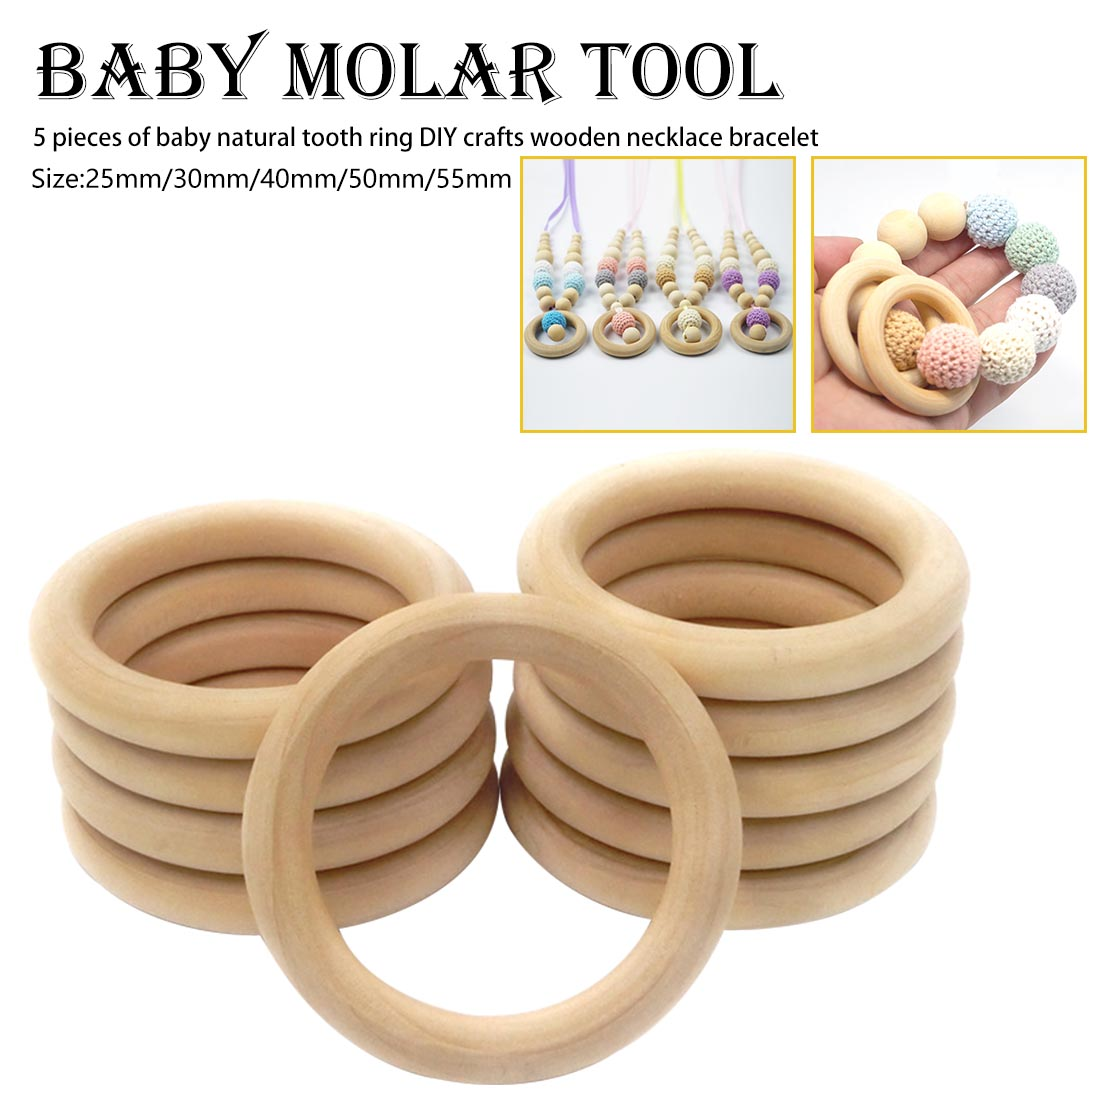 Baby Wooden Teething Rings Bracelet DIY Crafts Natural New Round Beads Connectors Circles Rings Wooden Round Kids Baby Toy